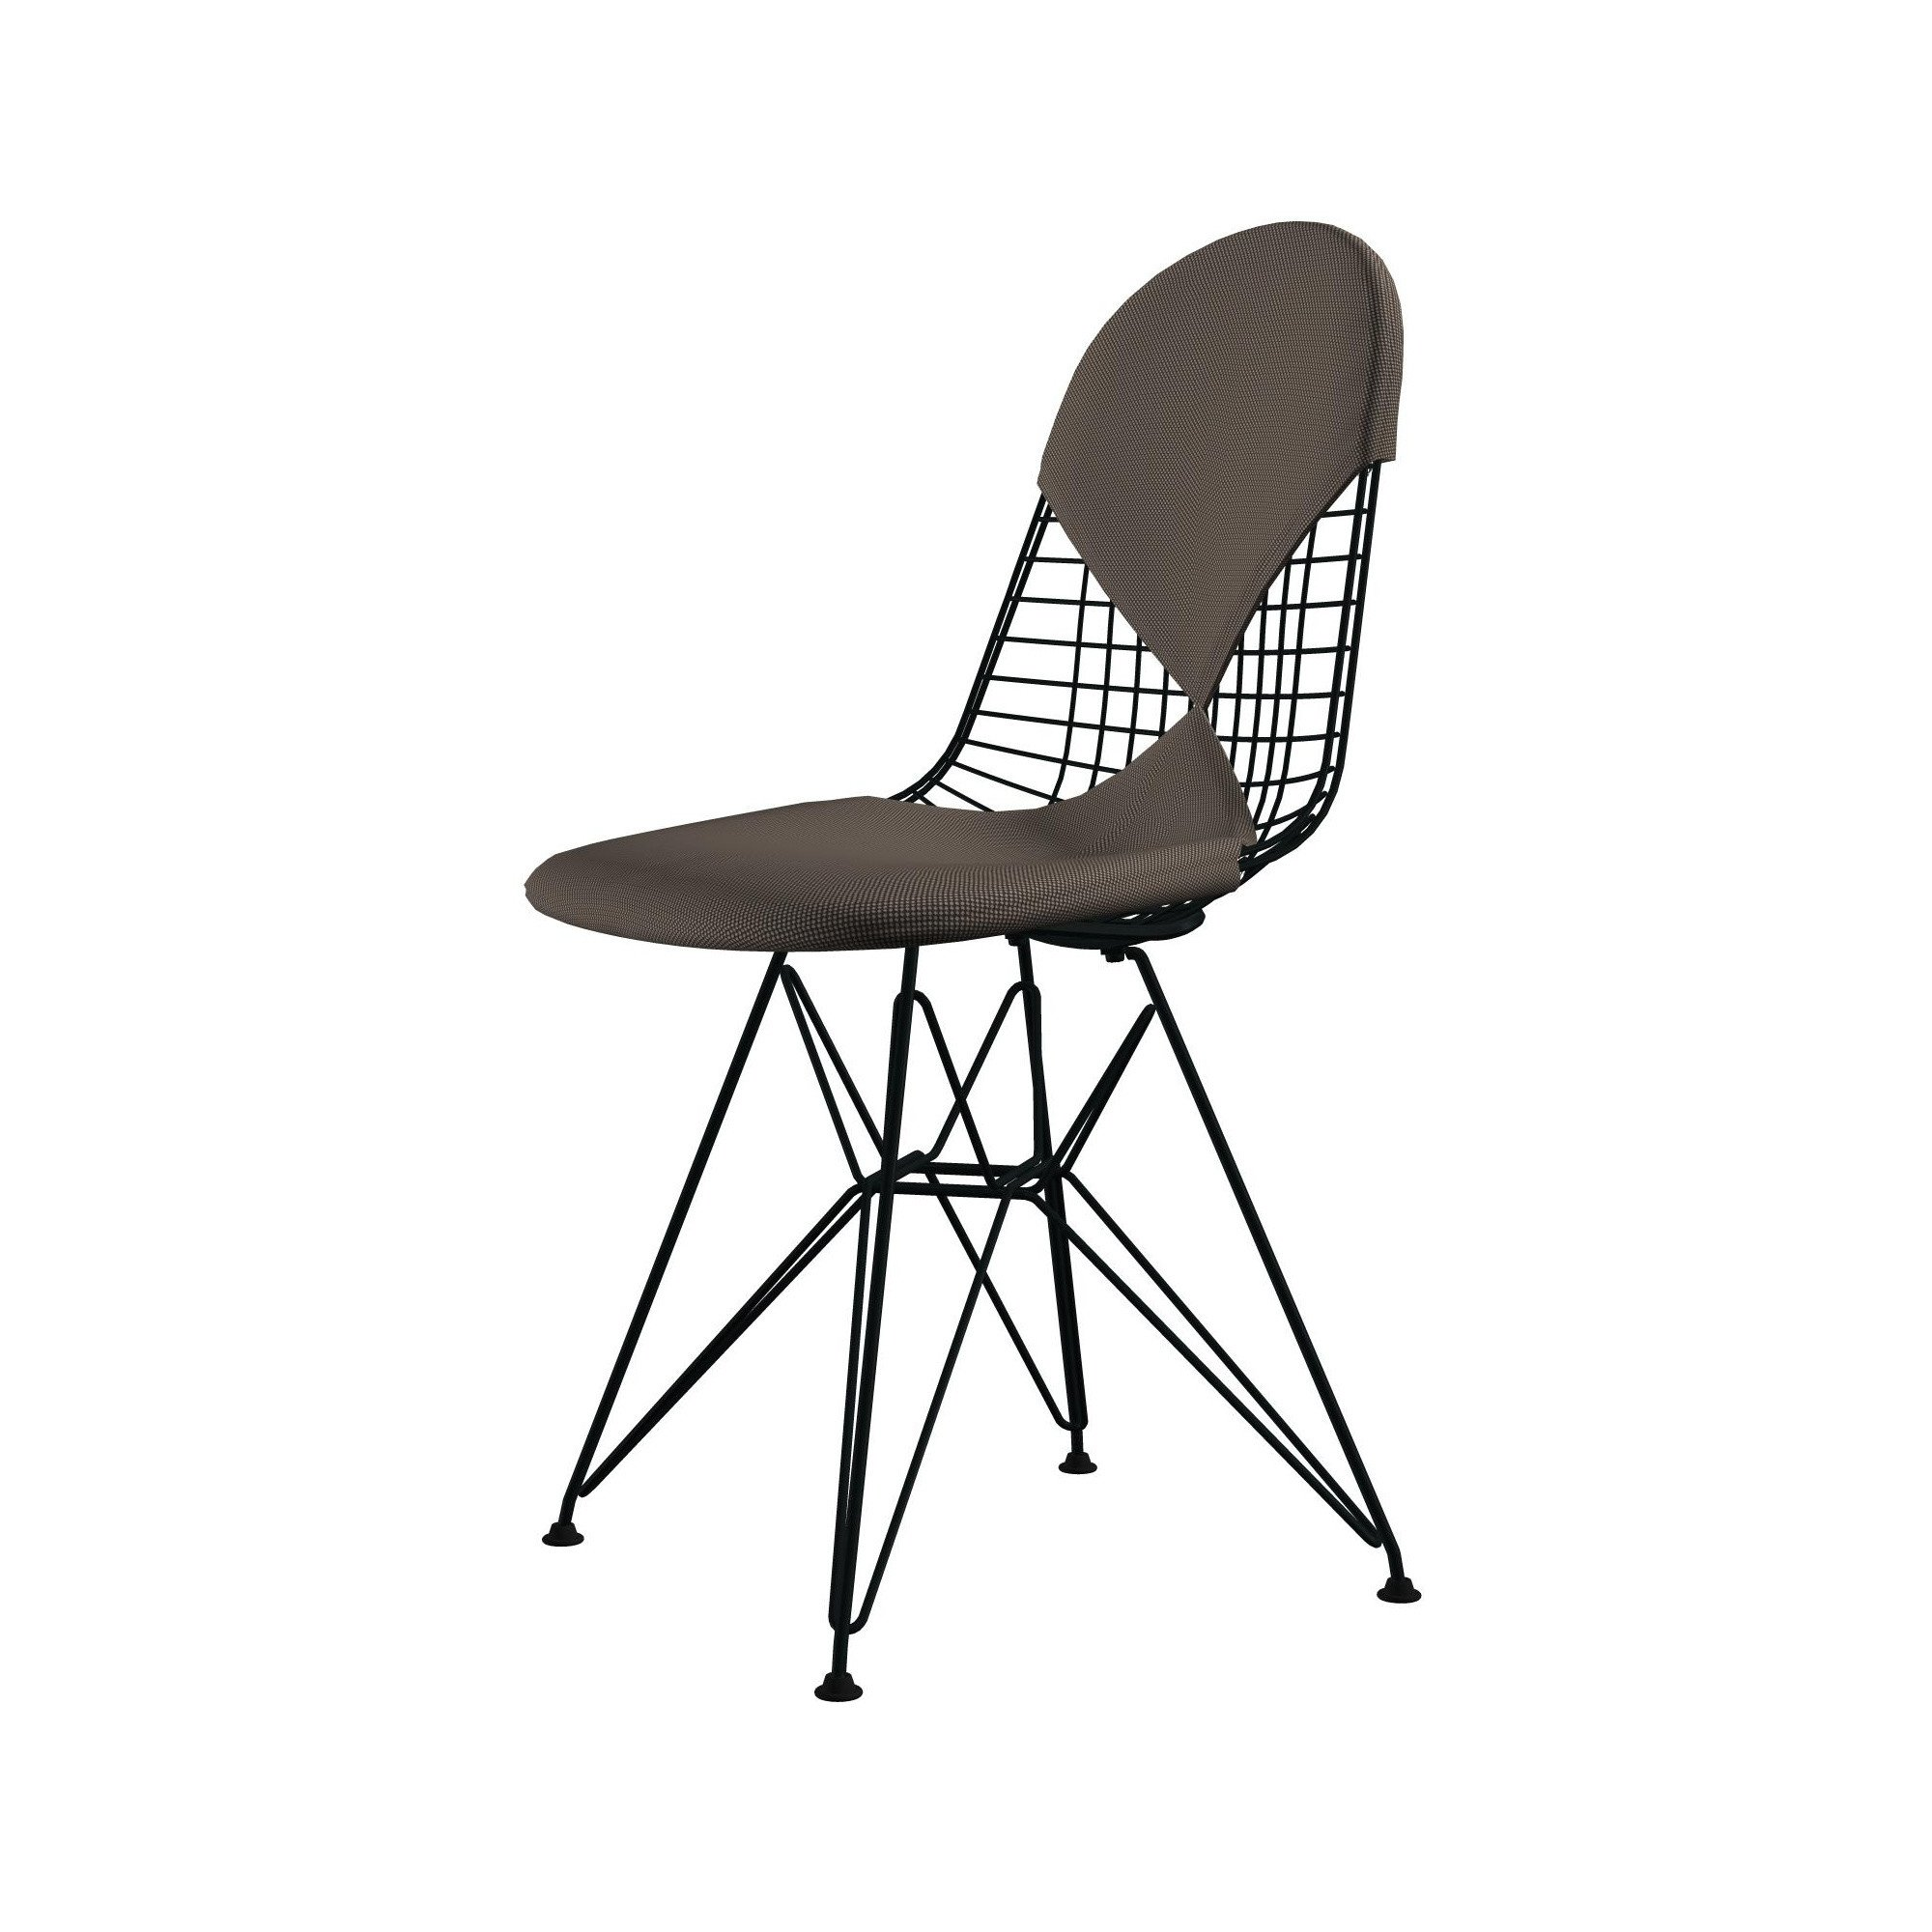 black by ok design en from chairs frame wire b architonic product chair one cushion